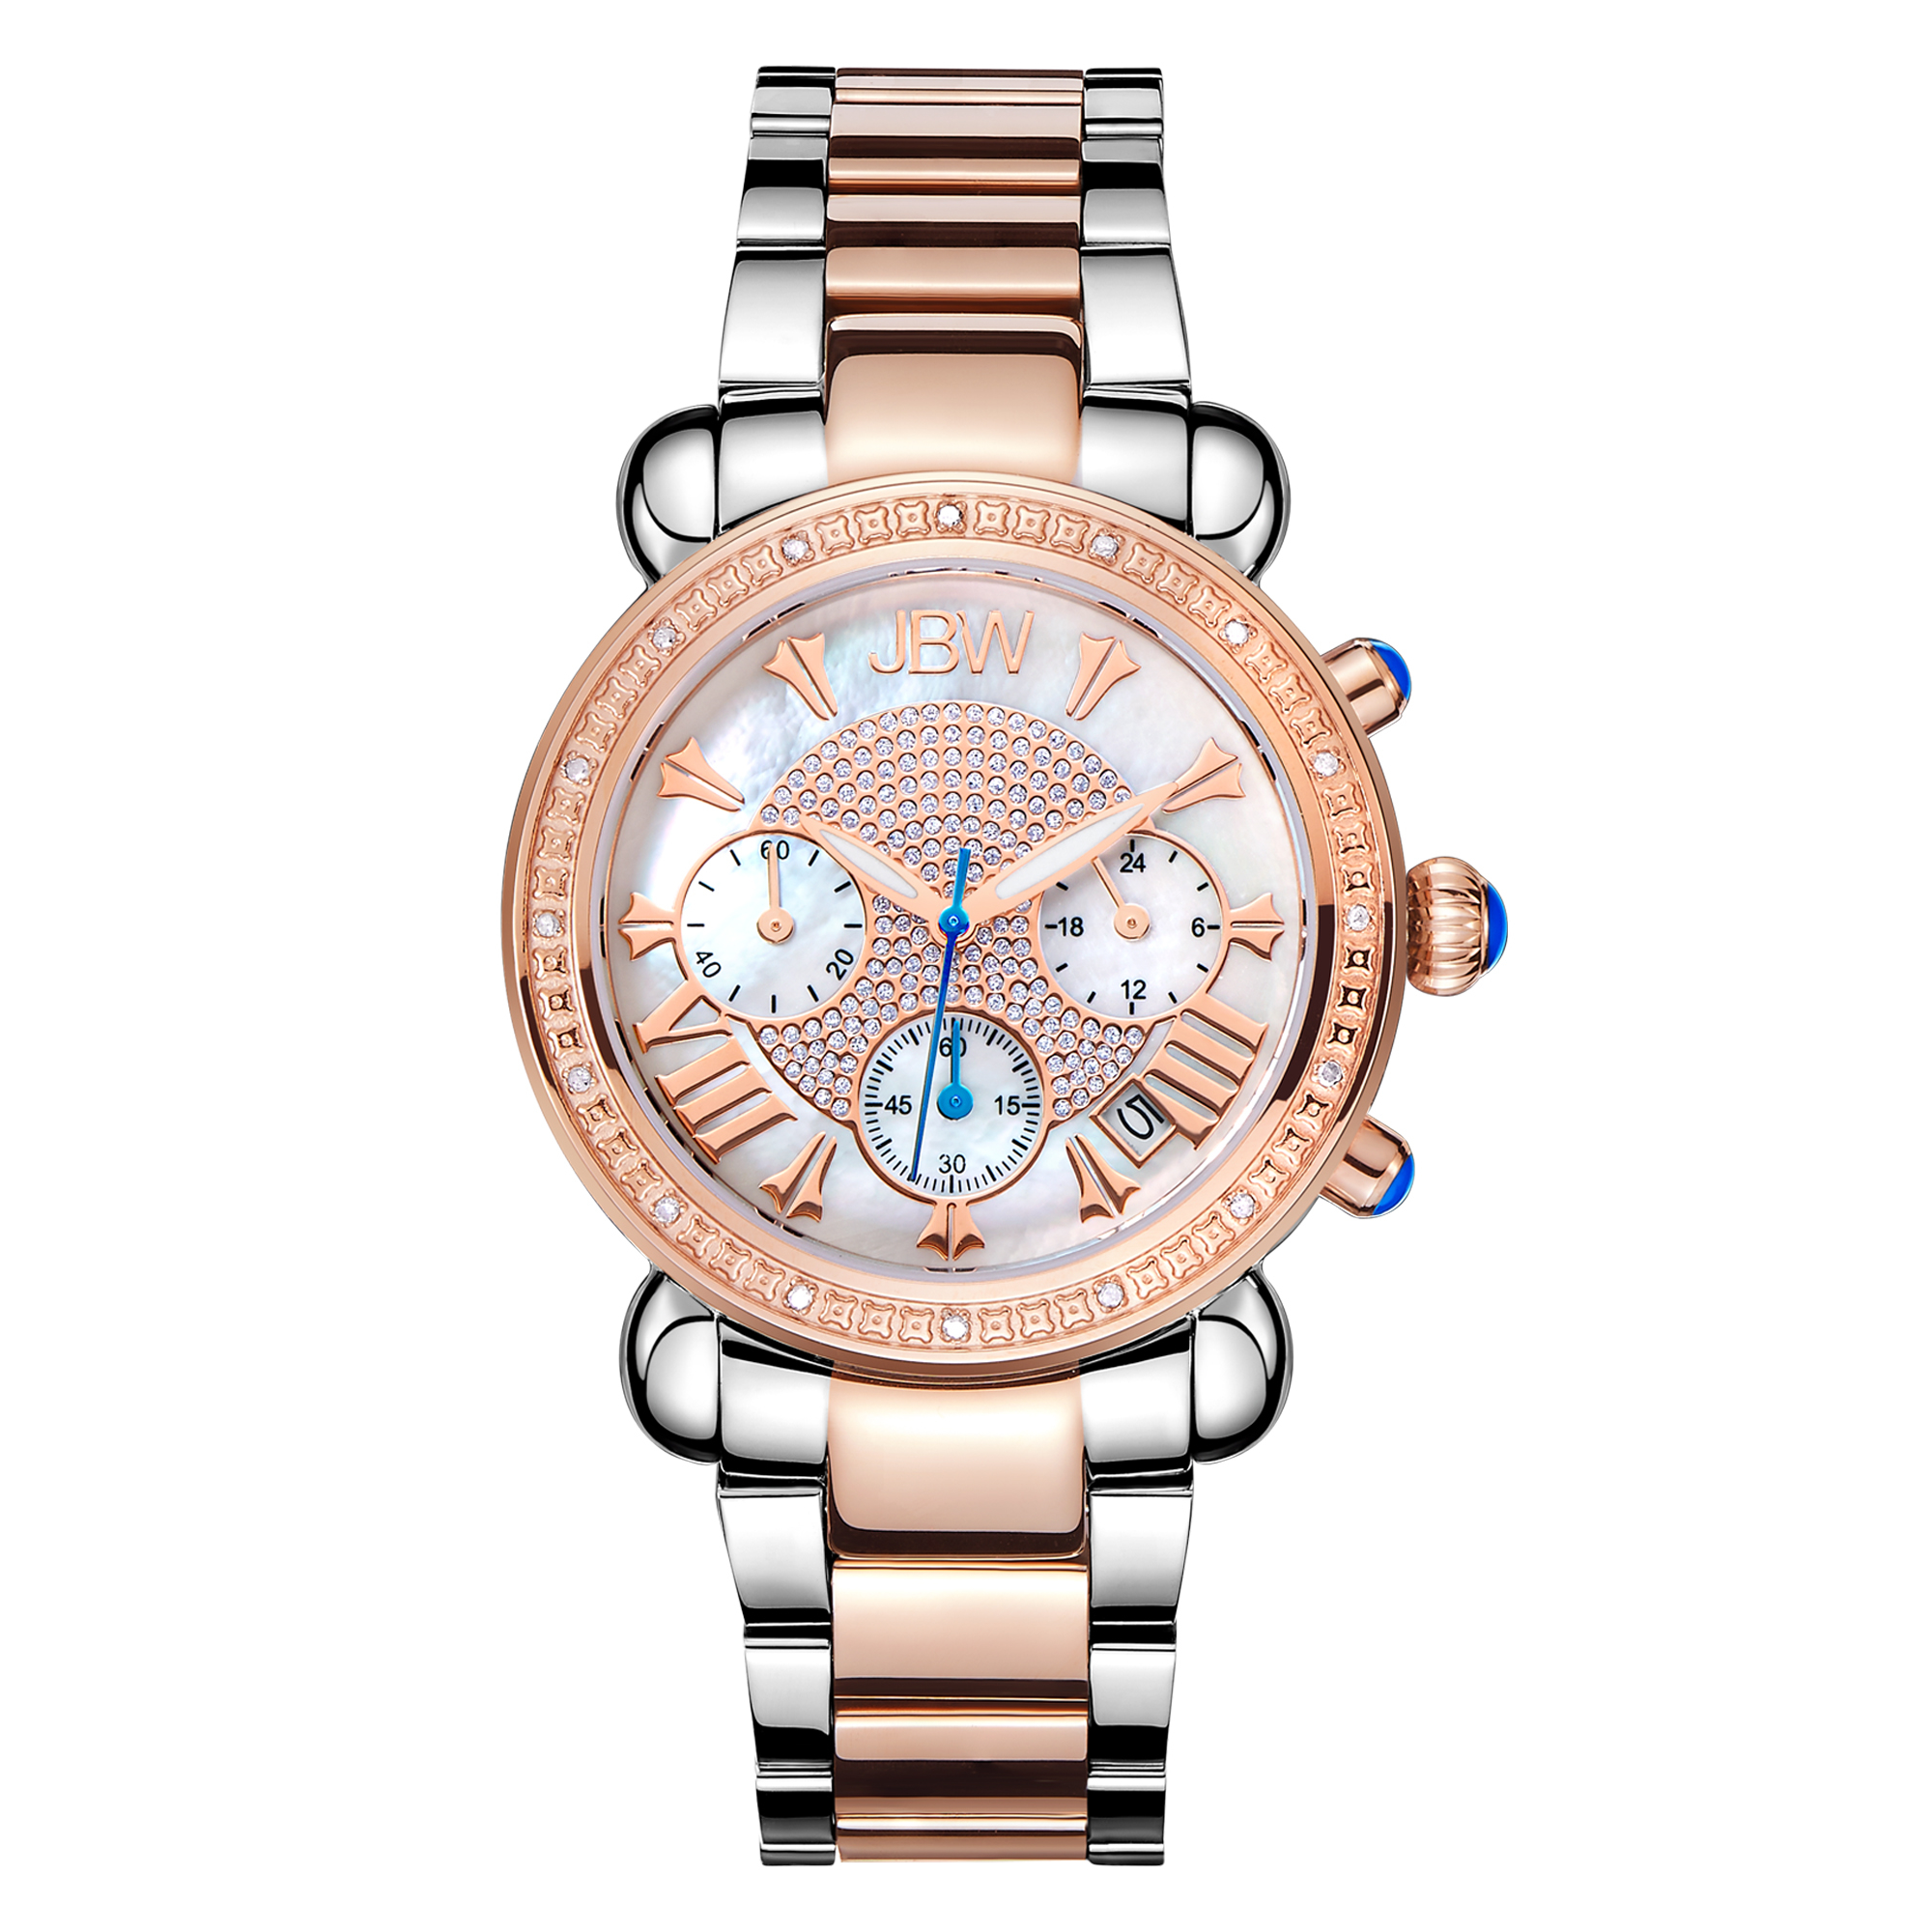 Jbw Victory Diamond Chronograph Mother Of Pearl Dial Ladies Watch Jb-6210-n In Gold